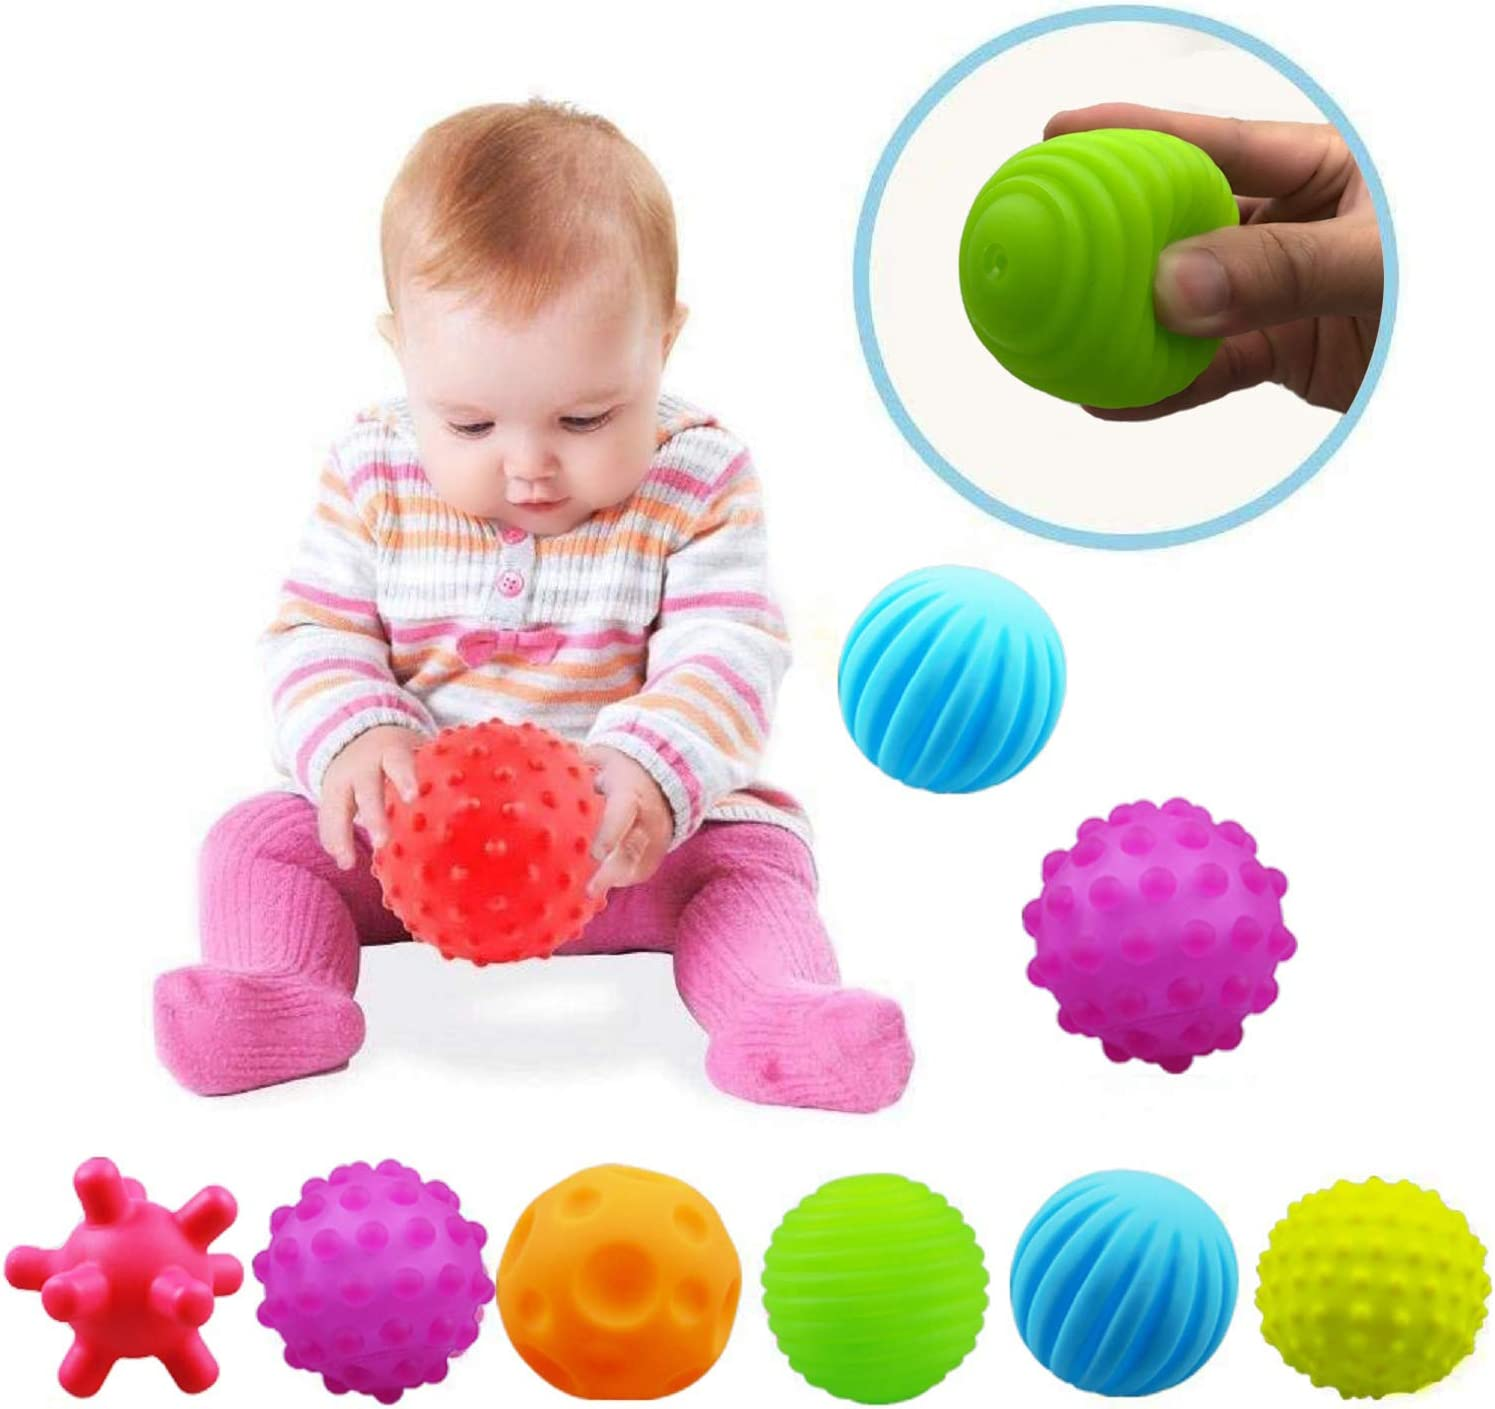 ROHSCE Textured Ball Set Baby, Sensory Balls Kids, Baby Squeeze Balls, Soft Balls Toddler Set of 6 Packs with BB Sounds for Babies Toddlers Children Boys Girls 6+ Months